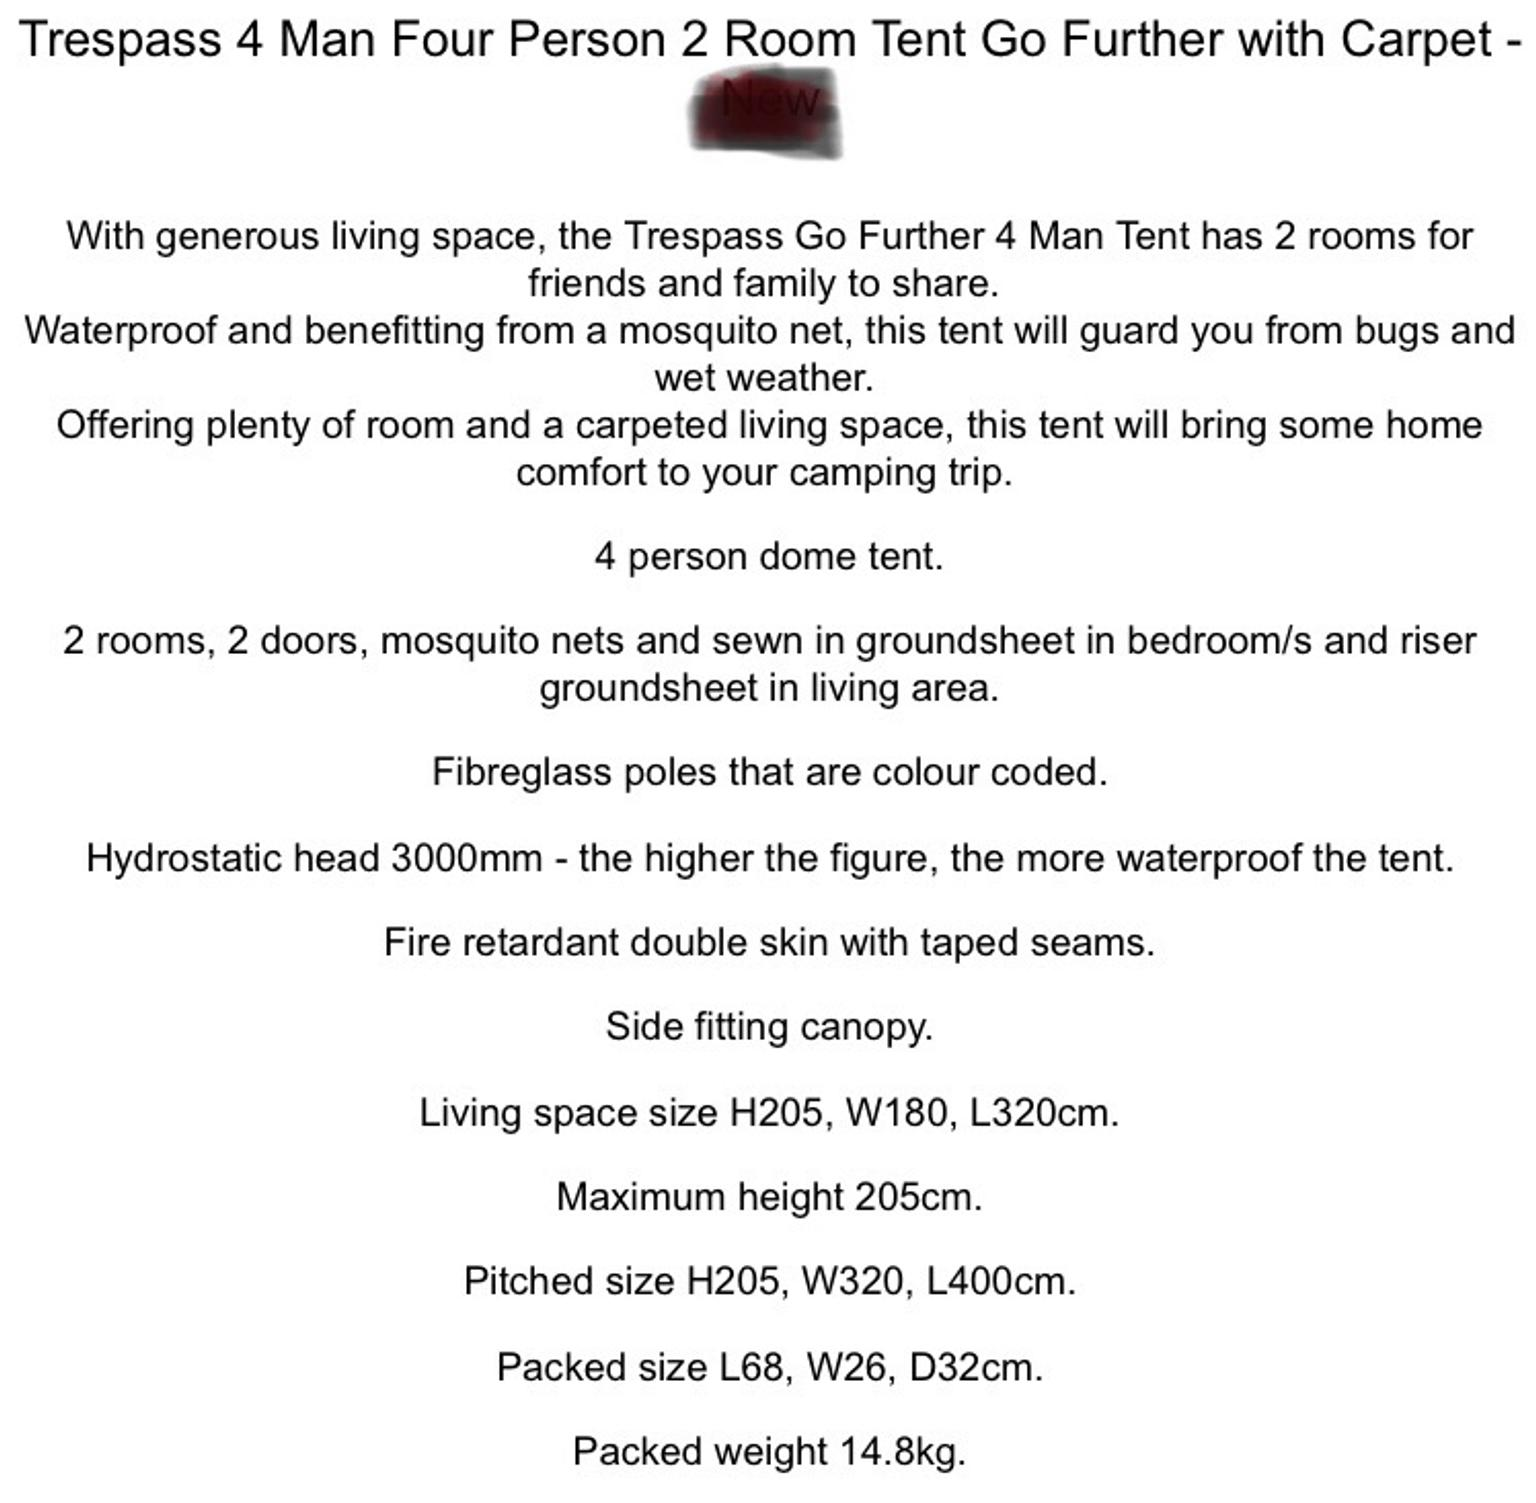 Trespass Go Further 4 man tent